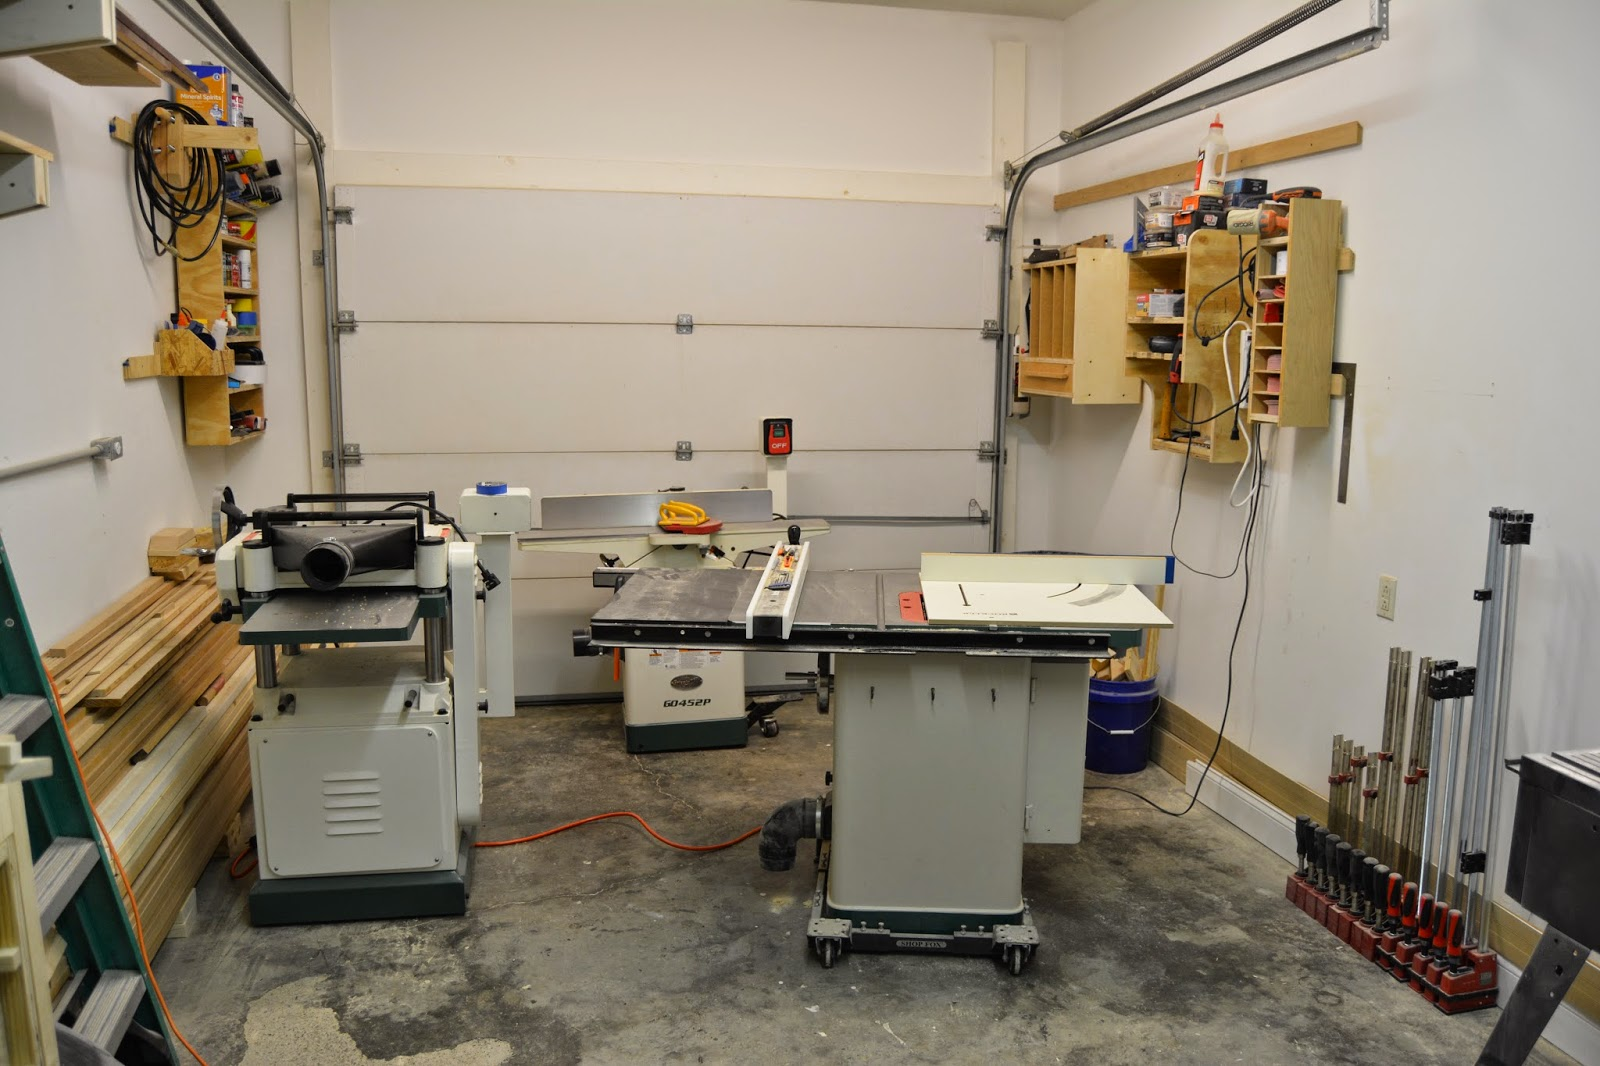 Lane Bros WoodShop: New Shop Layout